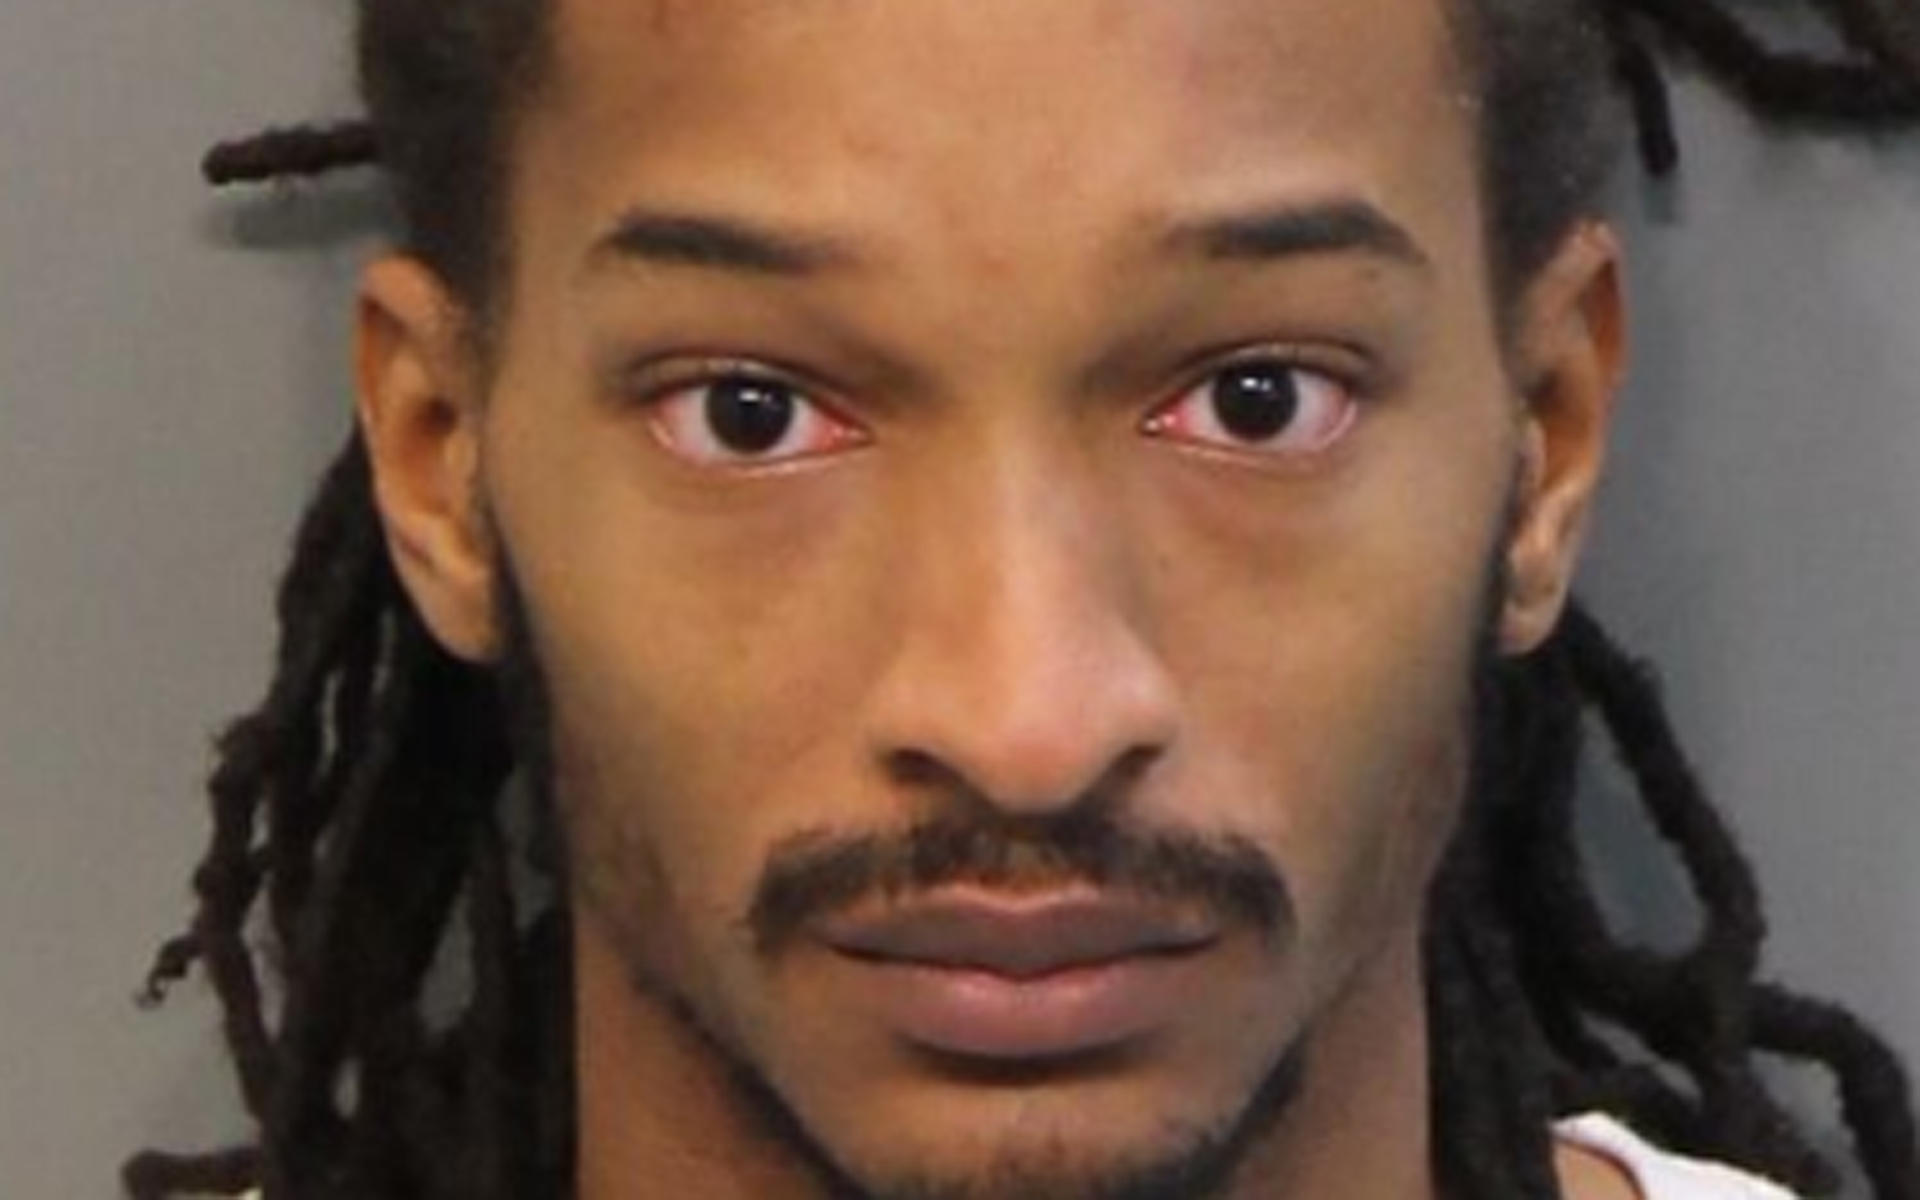 Chattanooga bus driver was using cellphone before deadly